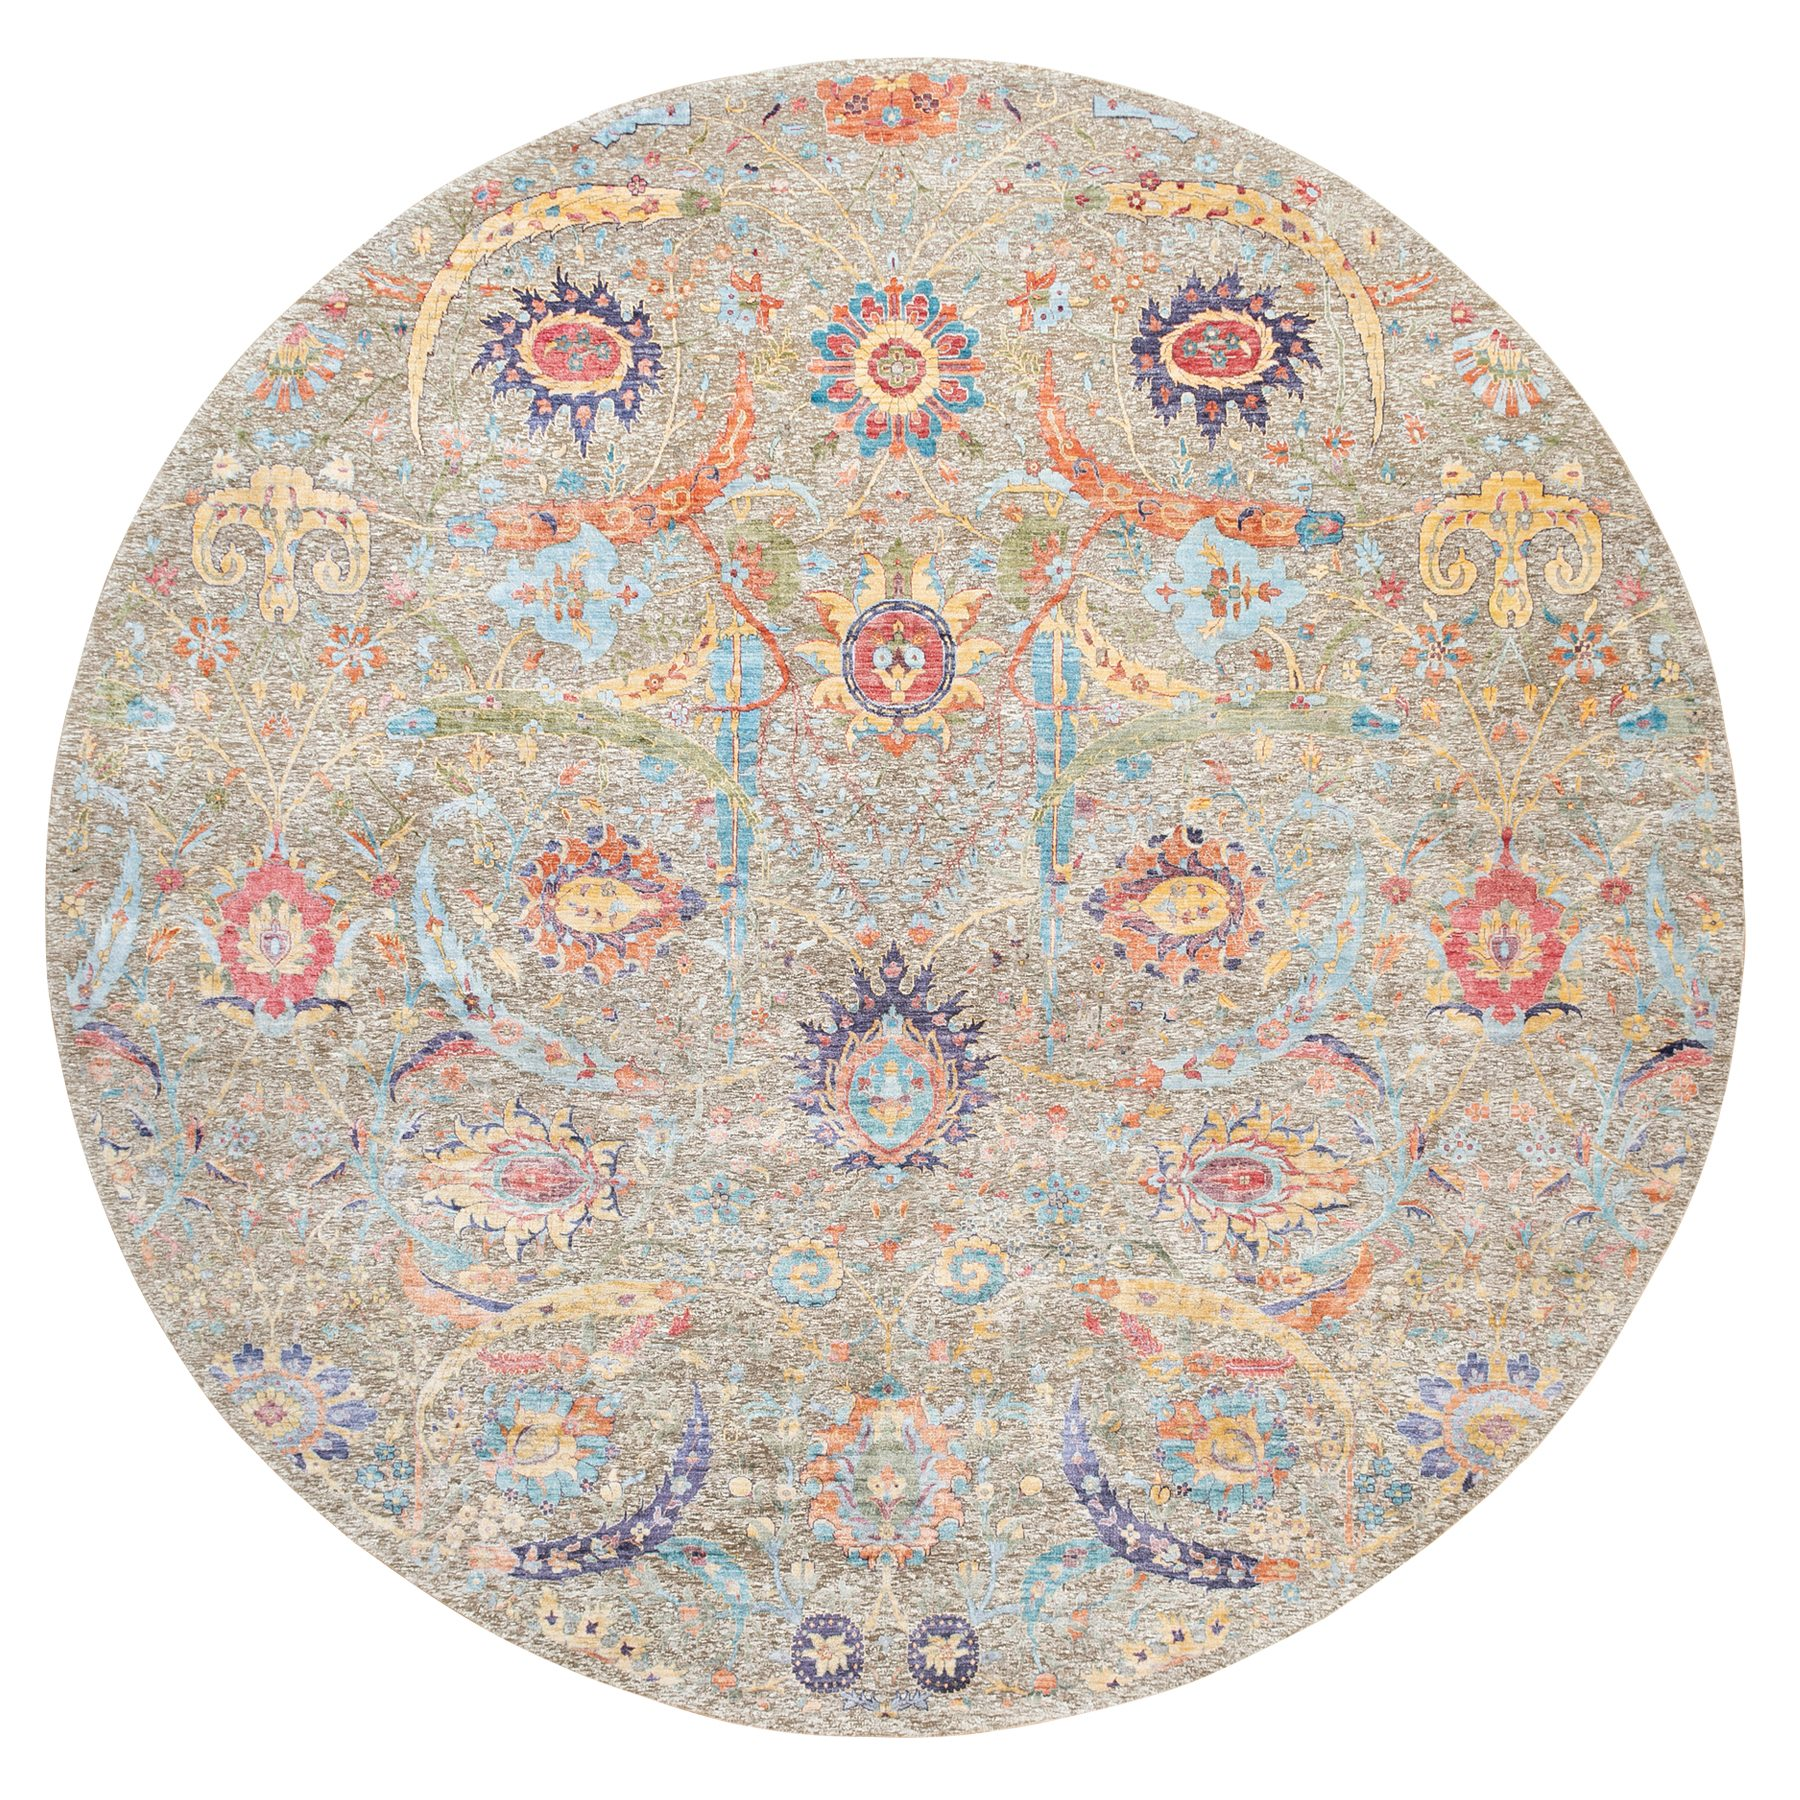 12'x12' Taupe Silk With Textured Wool Sickle Leaf Design Hand Knotted Oriental Round Rug